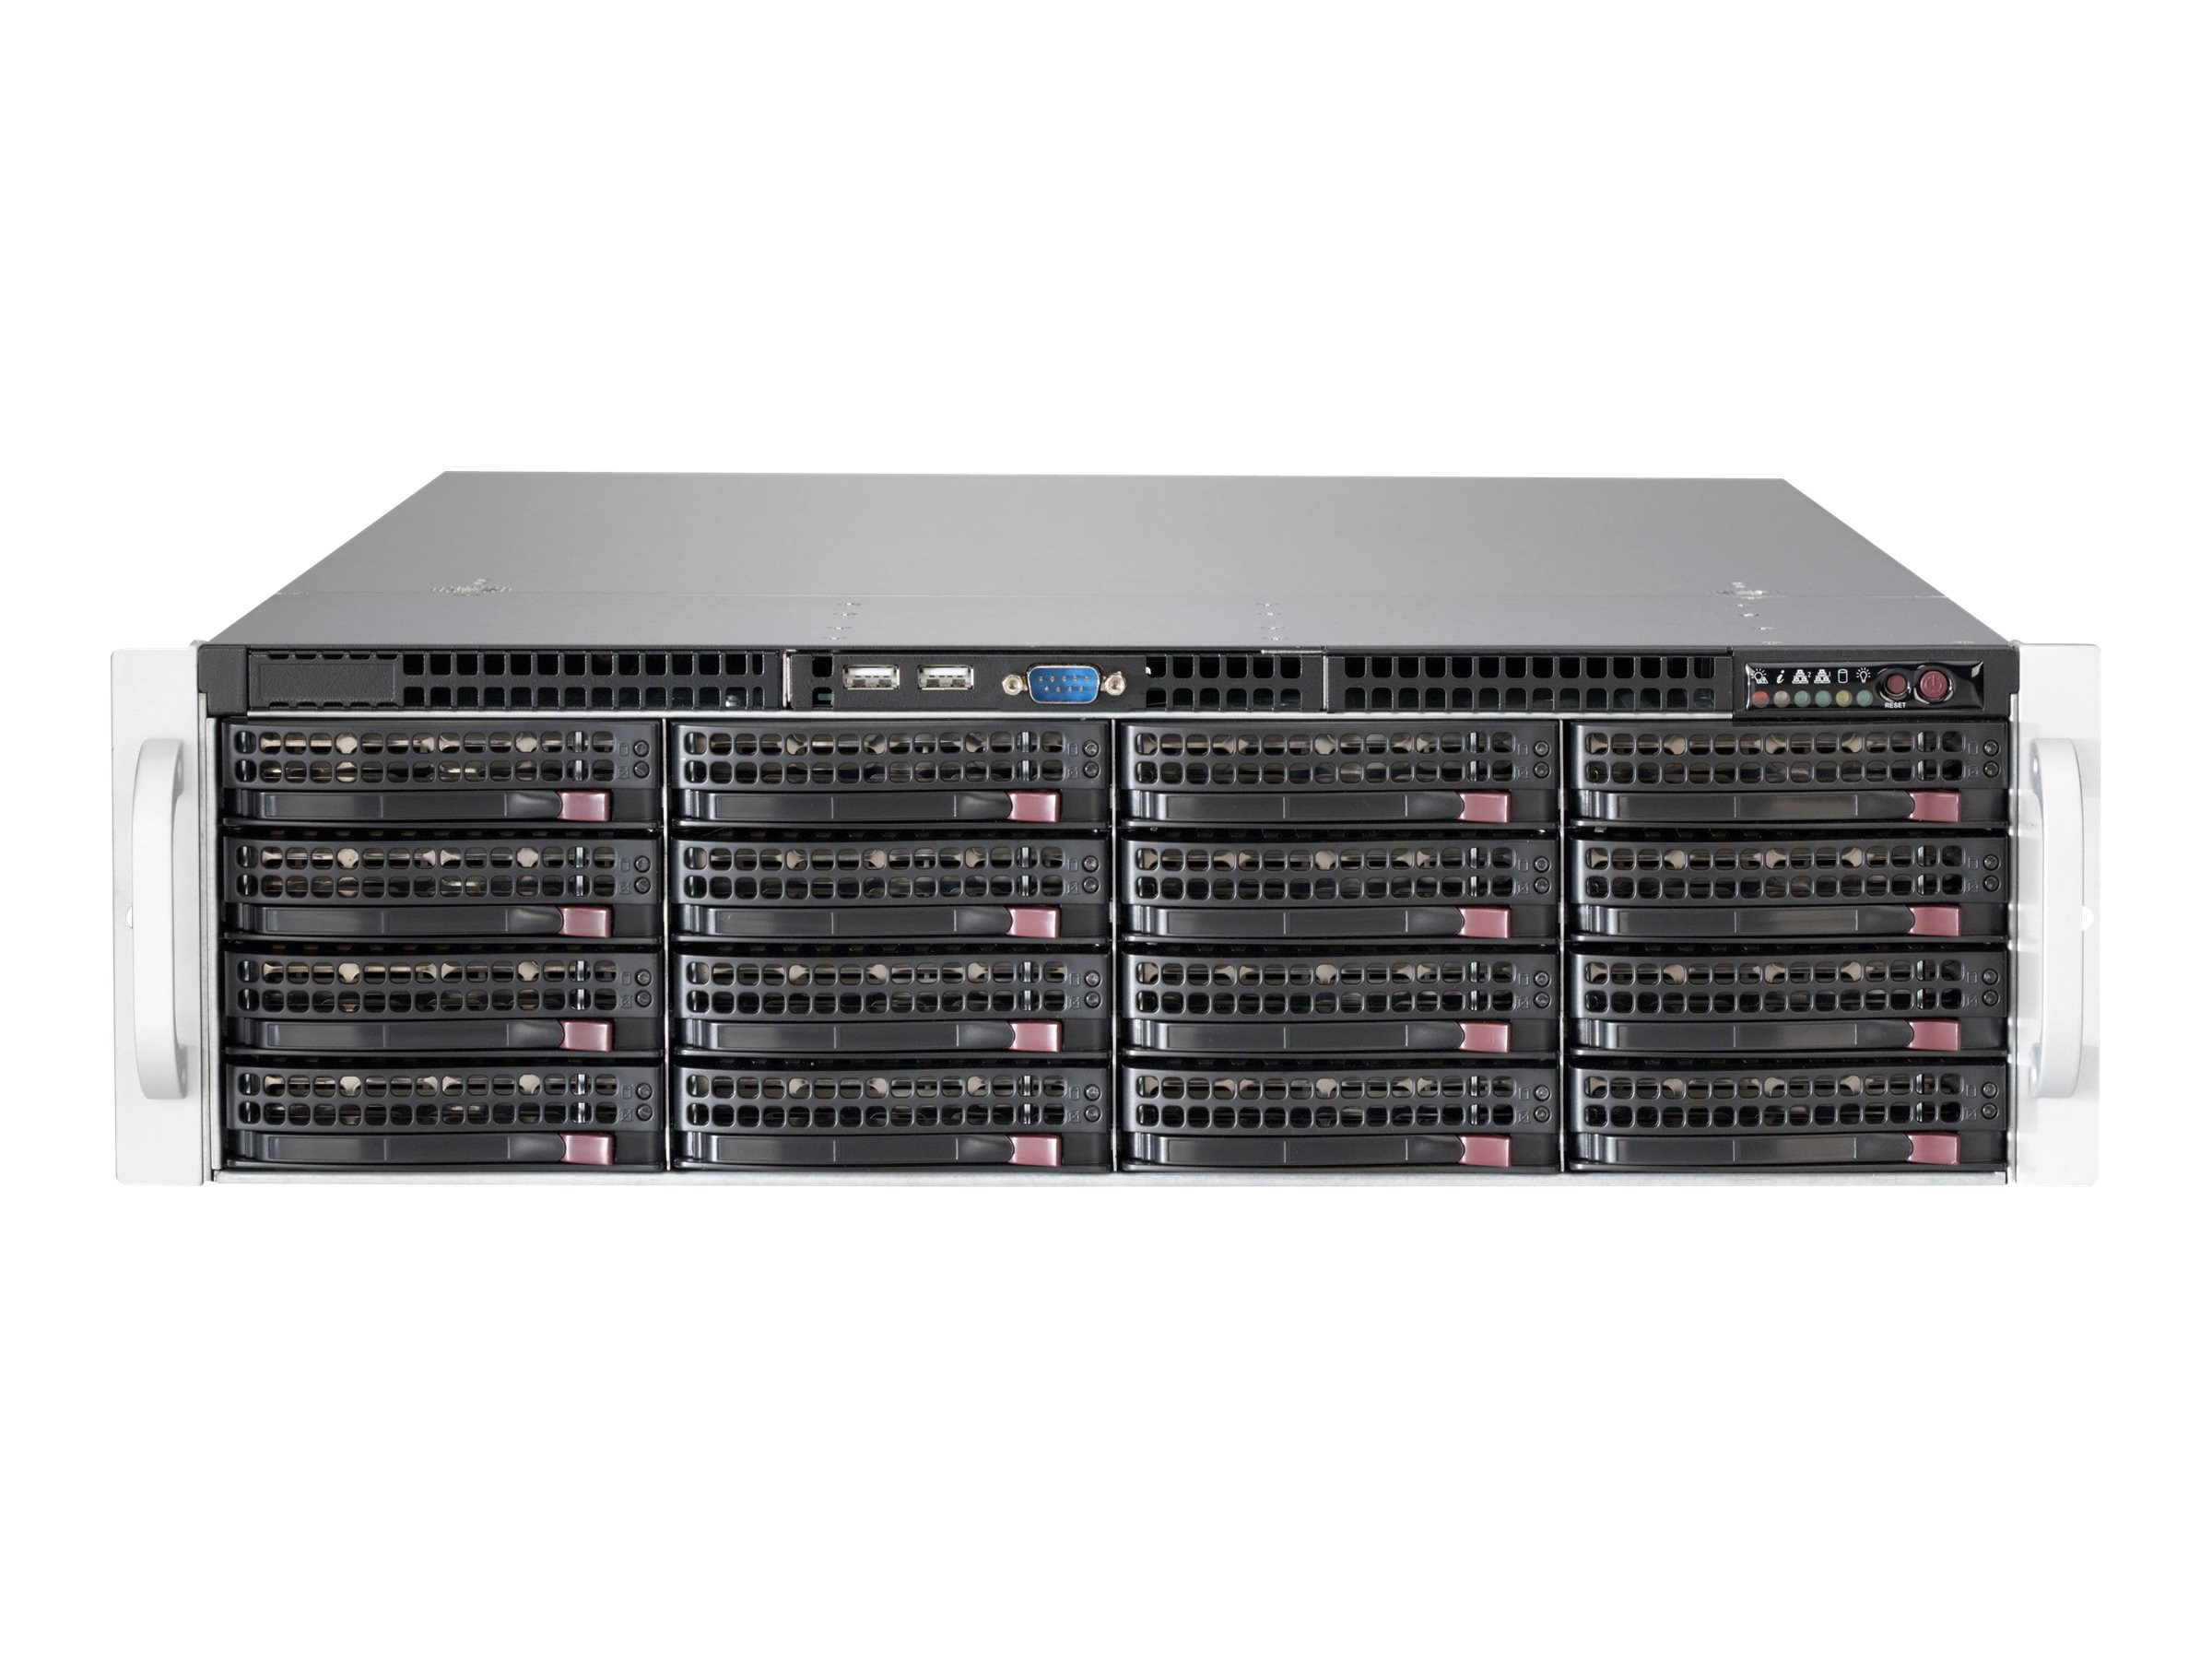 Supermicro Chassis, SuperChassis 836BE2C-R1K03JBOD 3U RM 16x3.5 HS Bays 2x1000W, CSE-836BE2C-R1K03JBOD